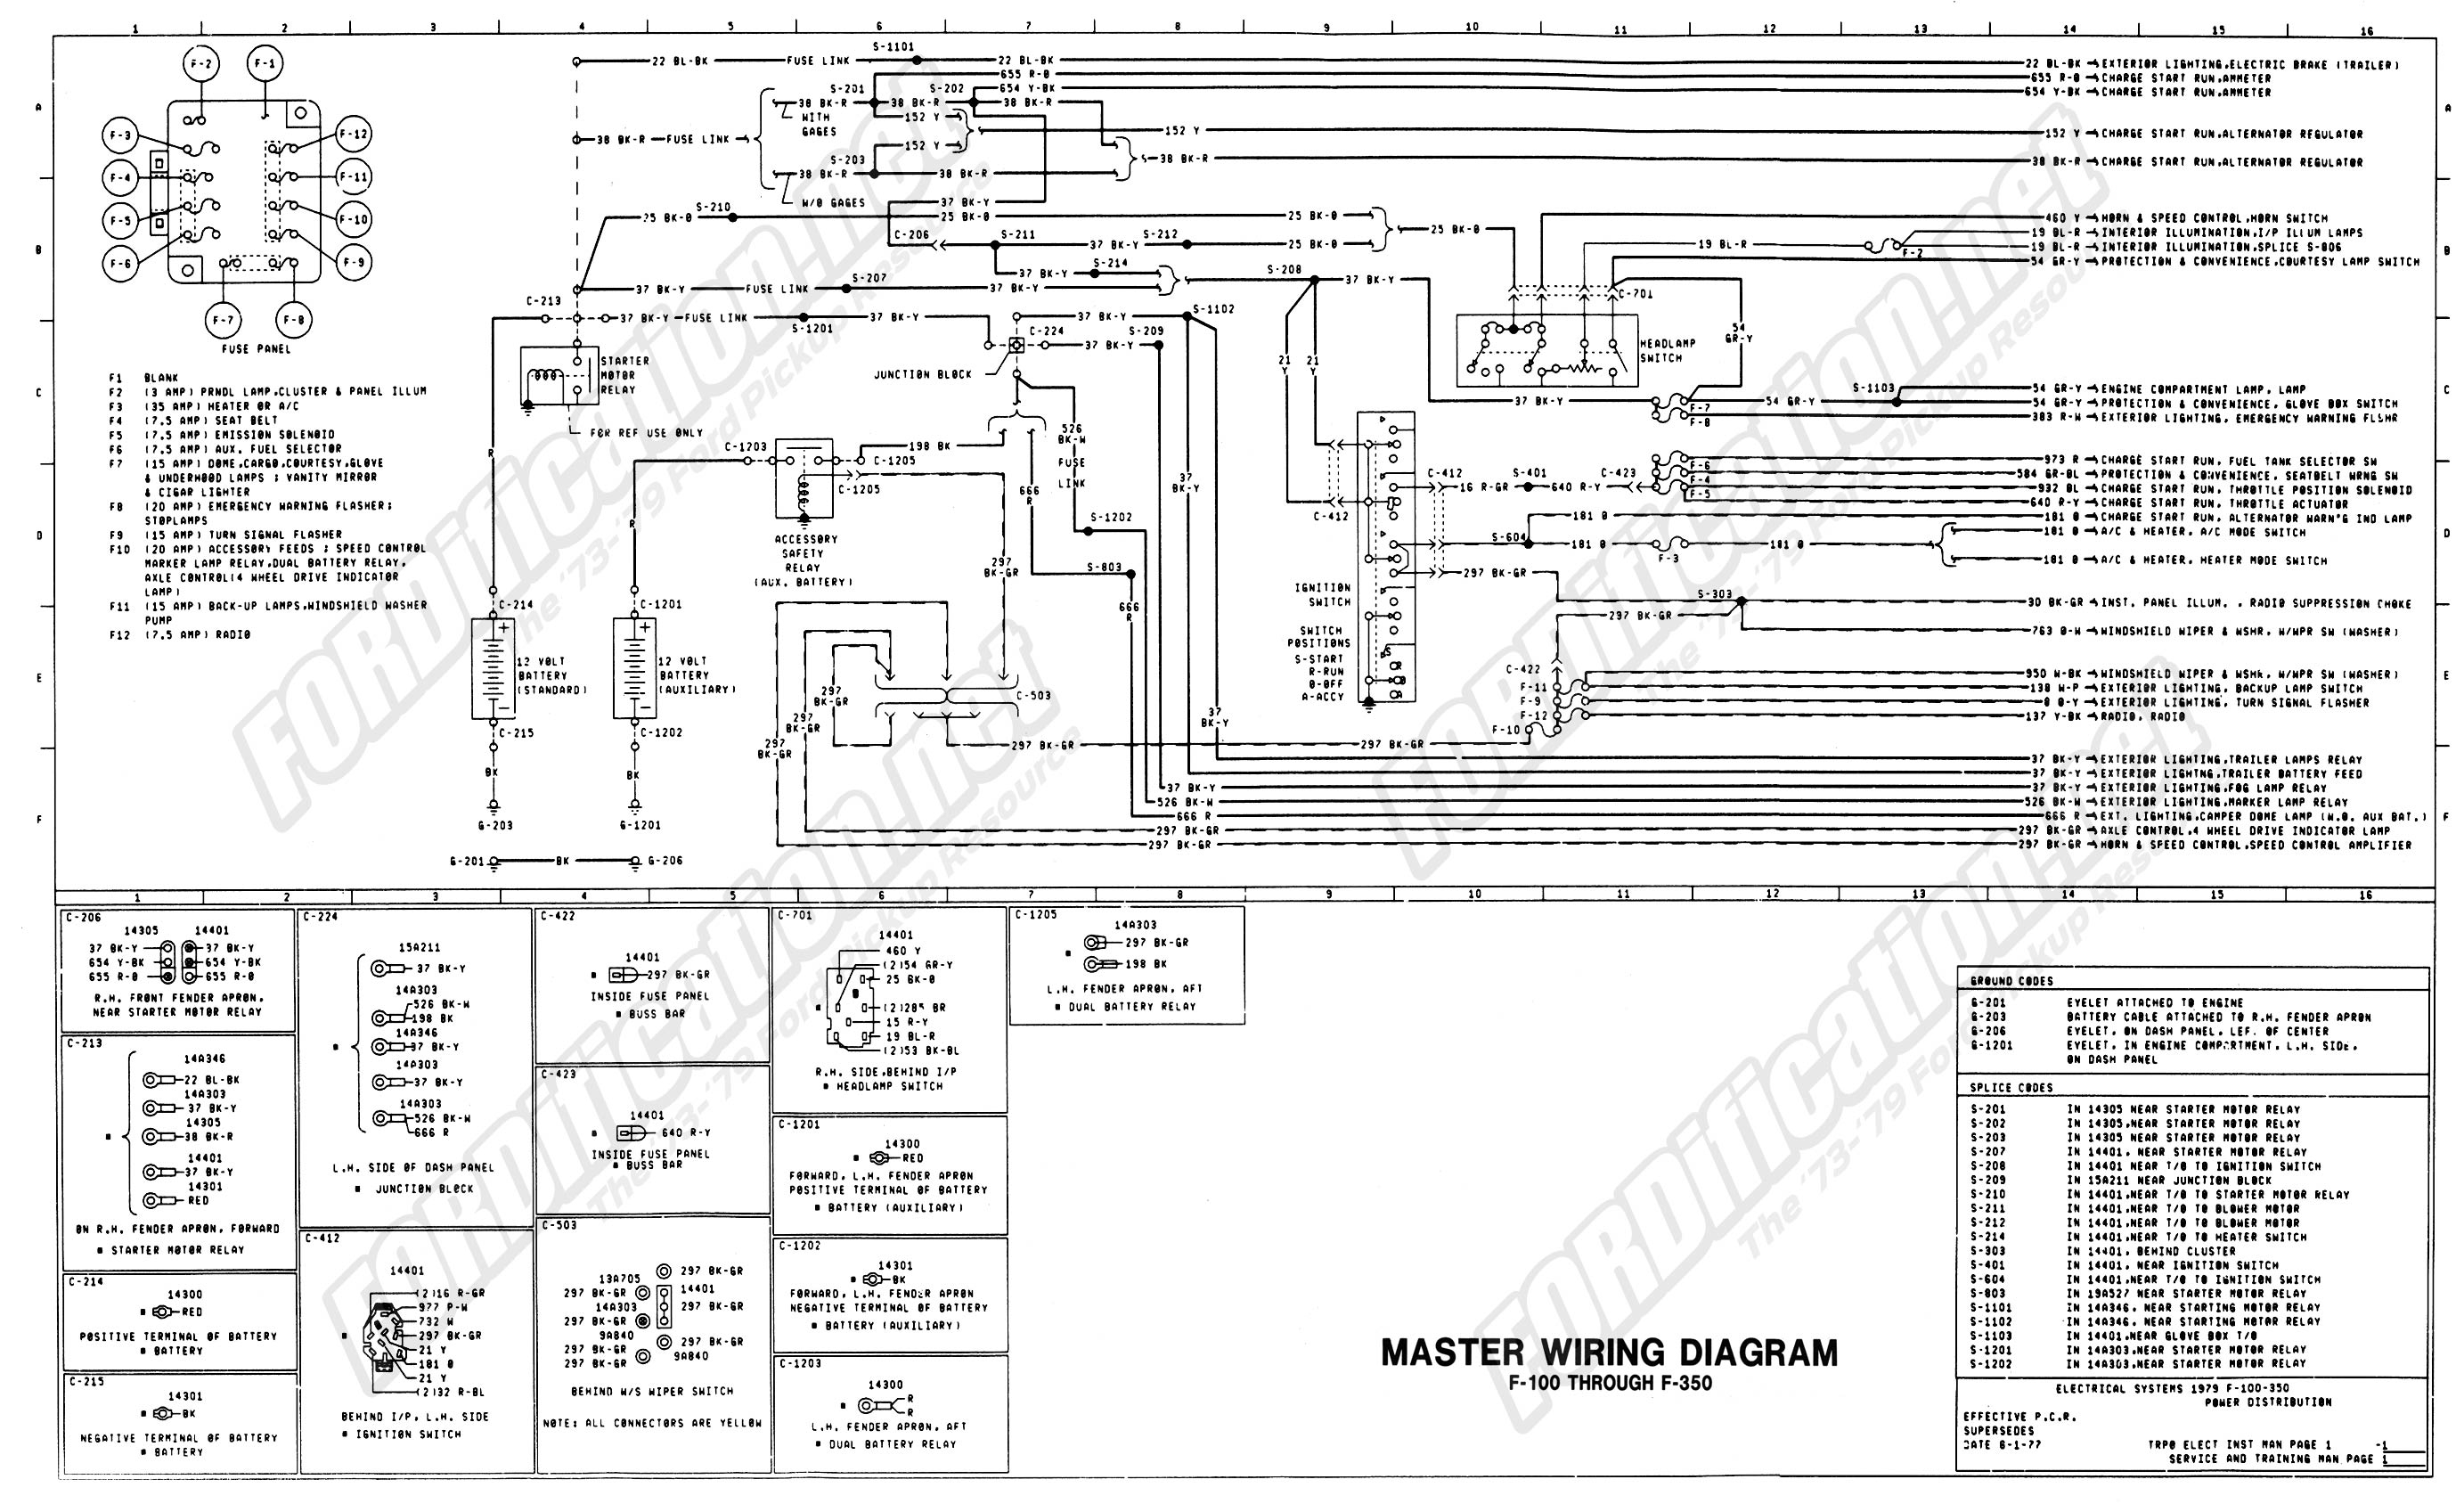 International Wiring Diagrams Prostart Wiring Diagram